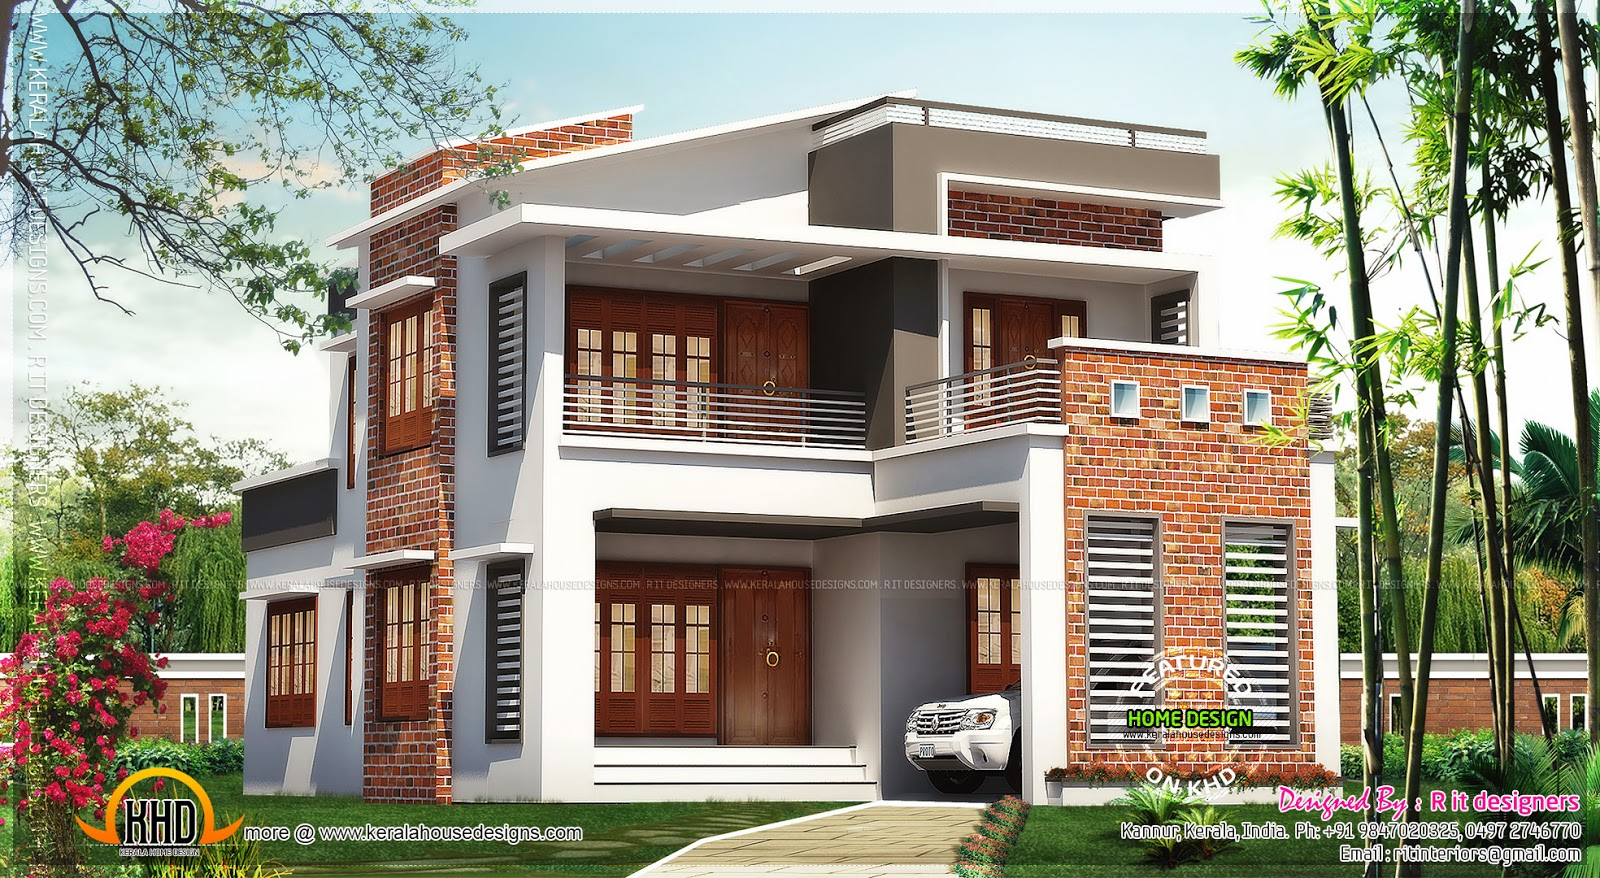 Brick mix house exterior design kerala home design and for Best house front design